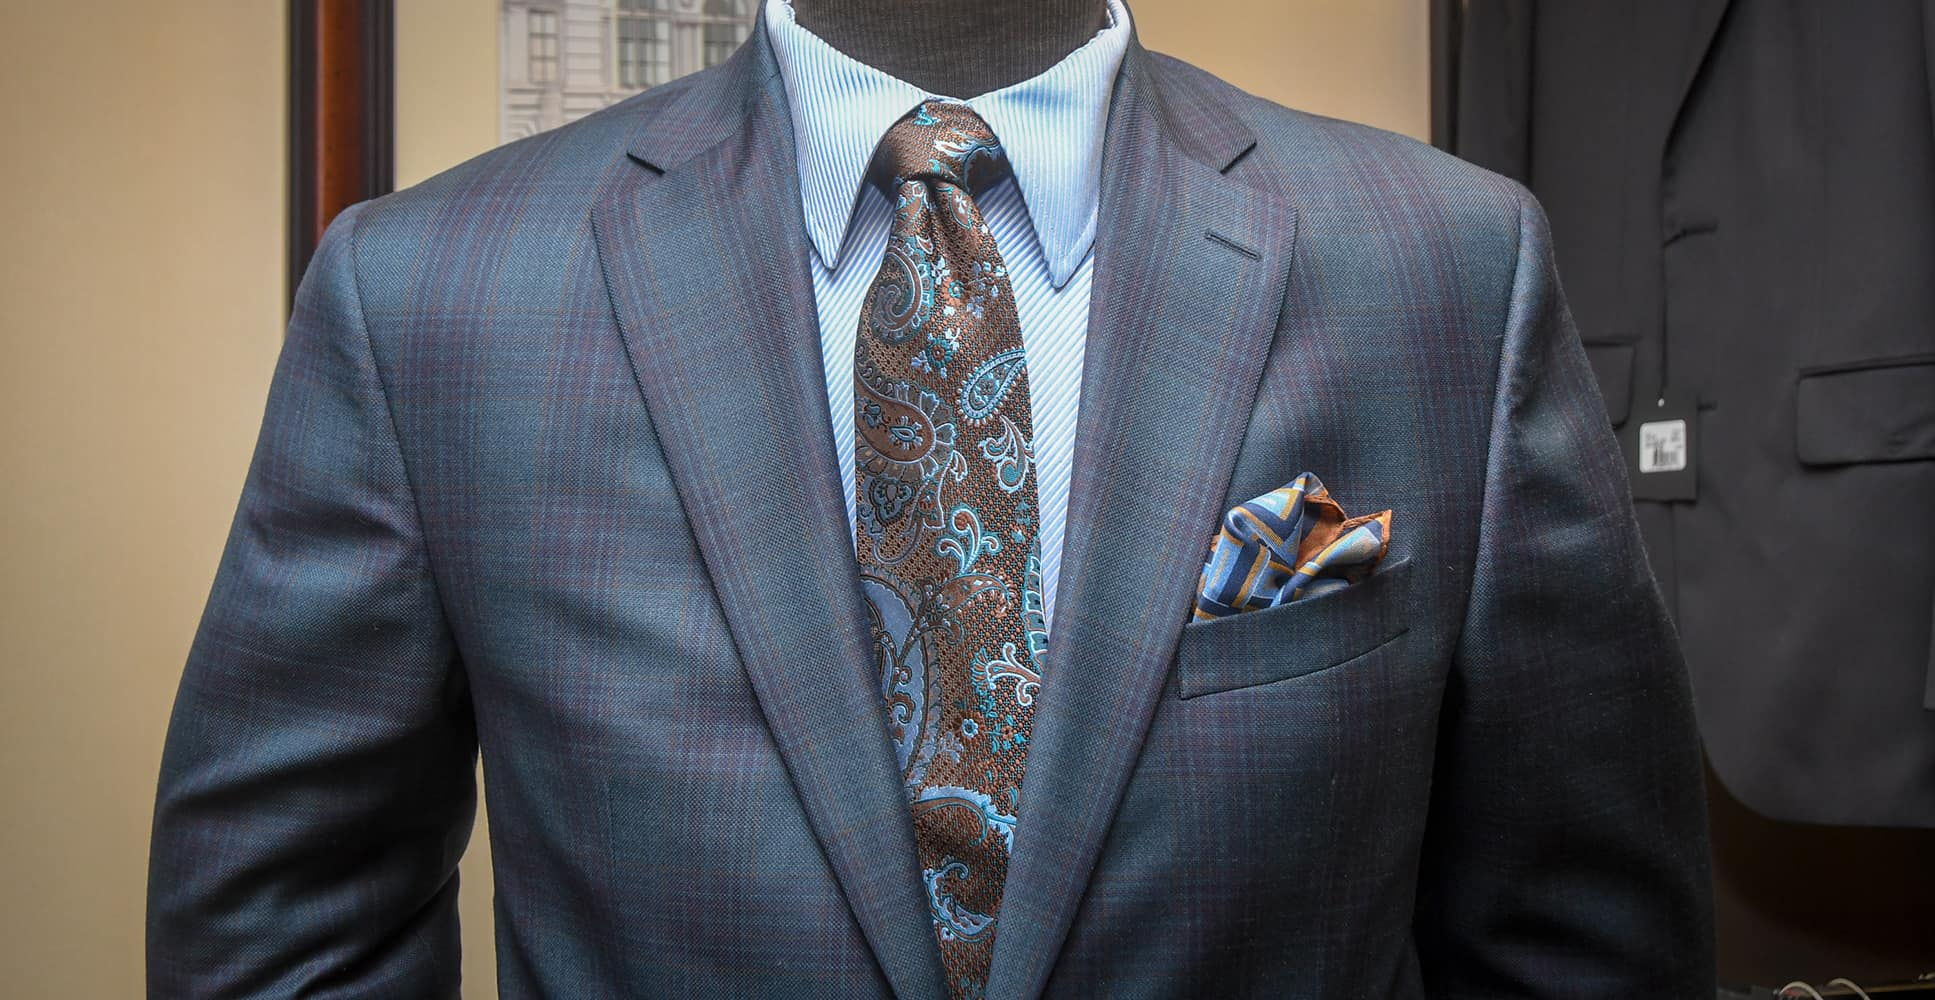 A suit and tie with a pocket square